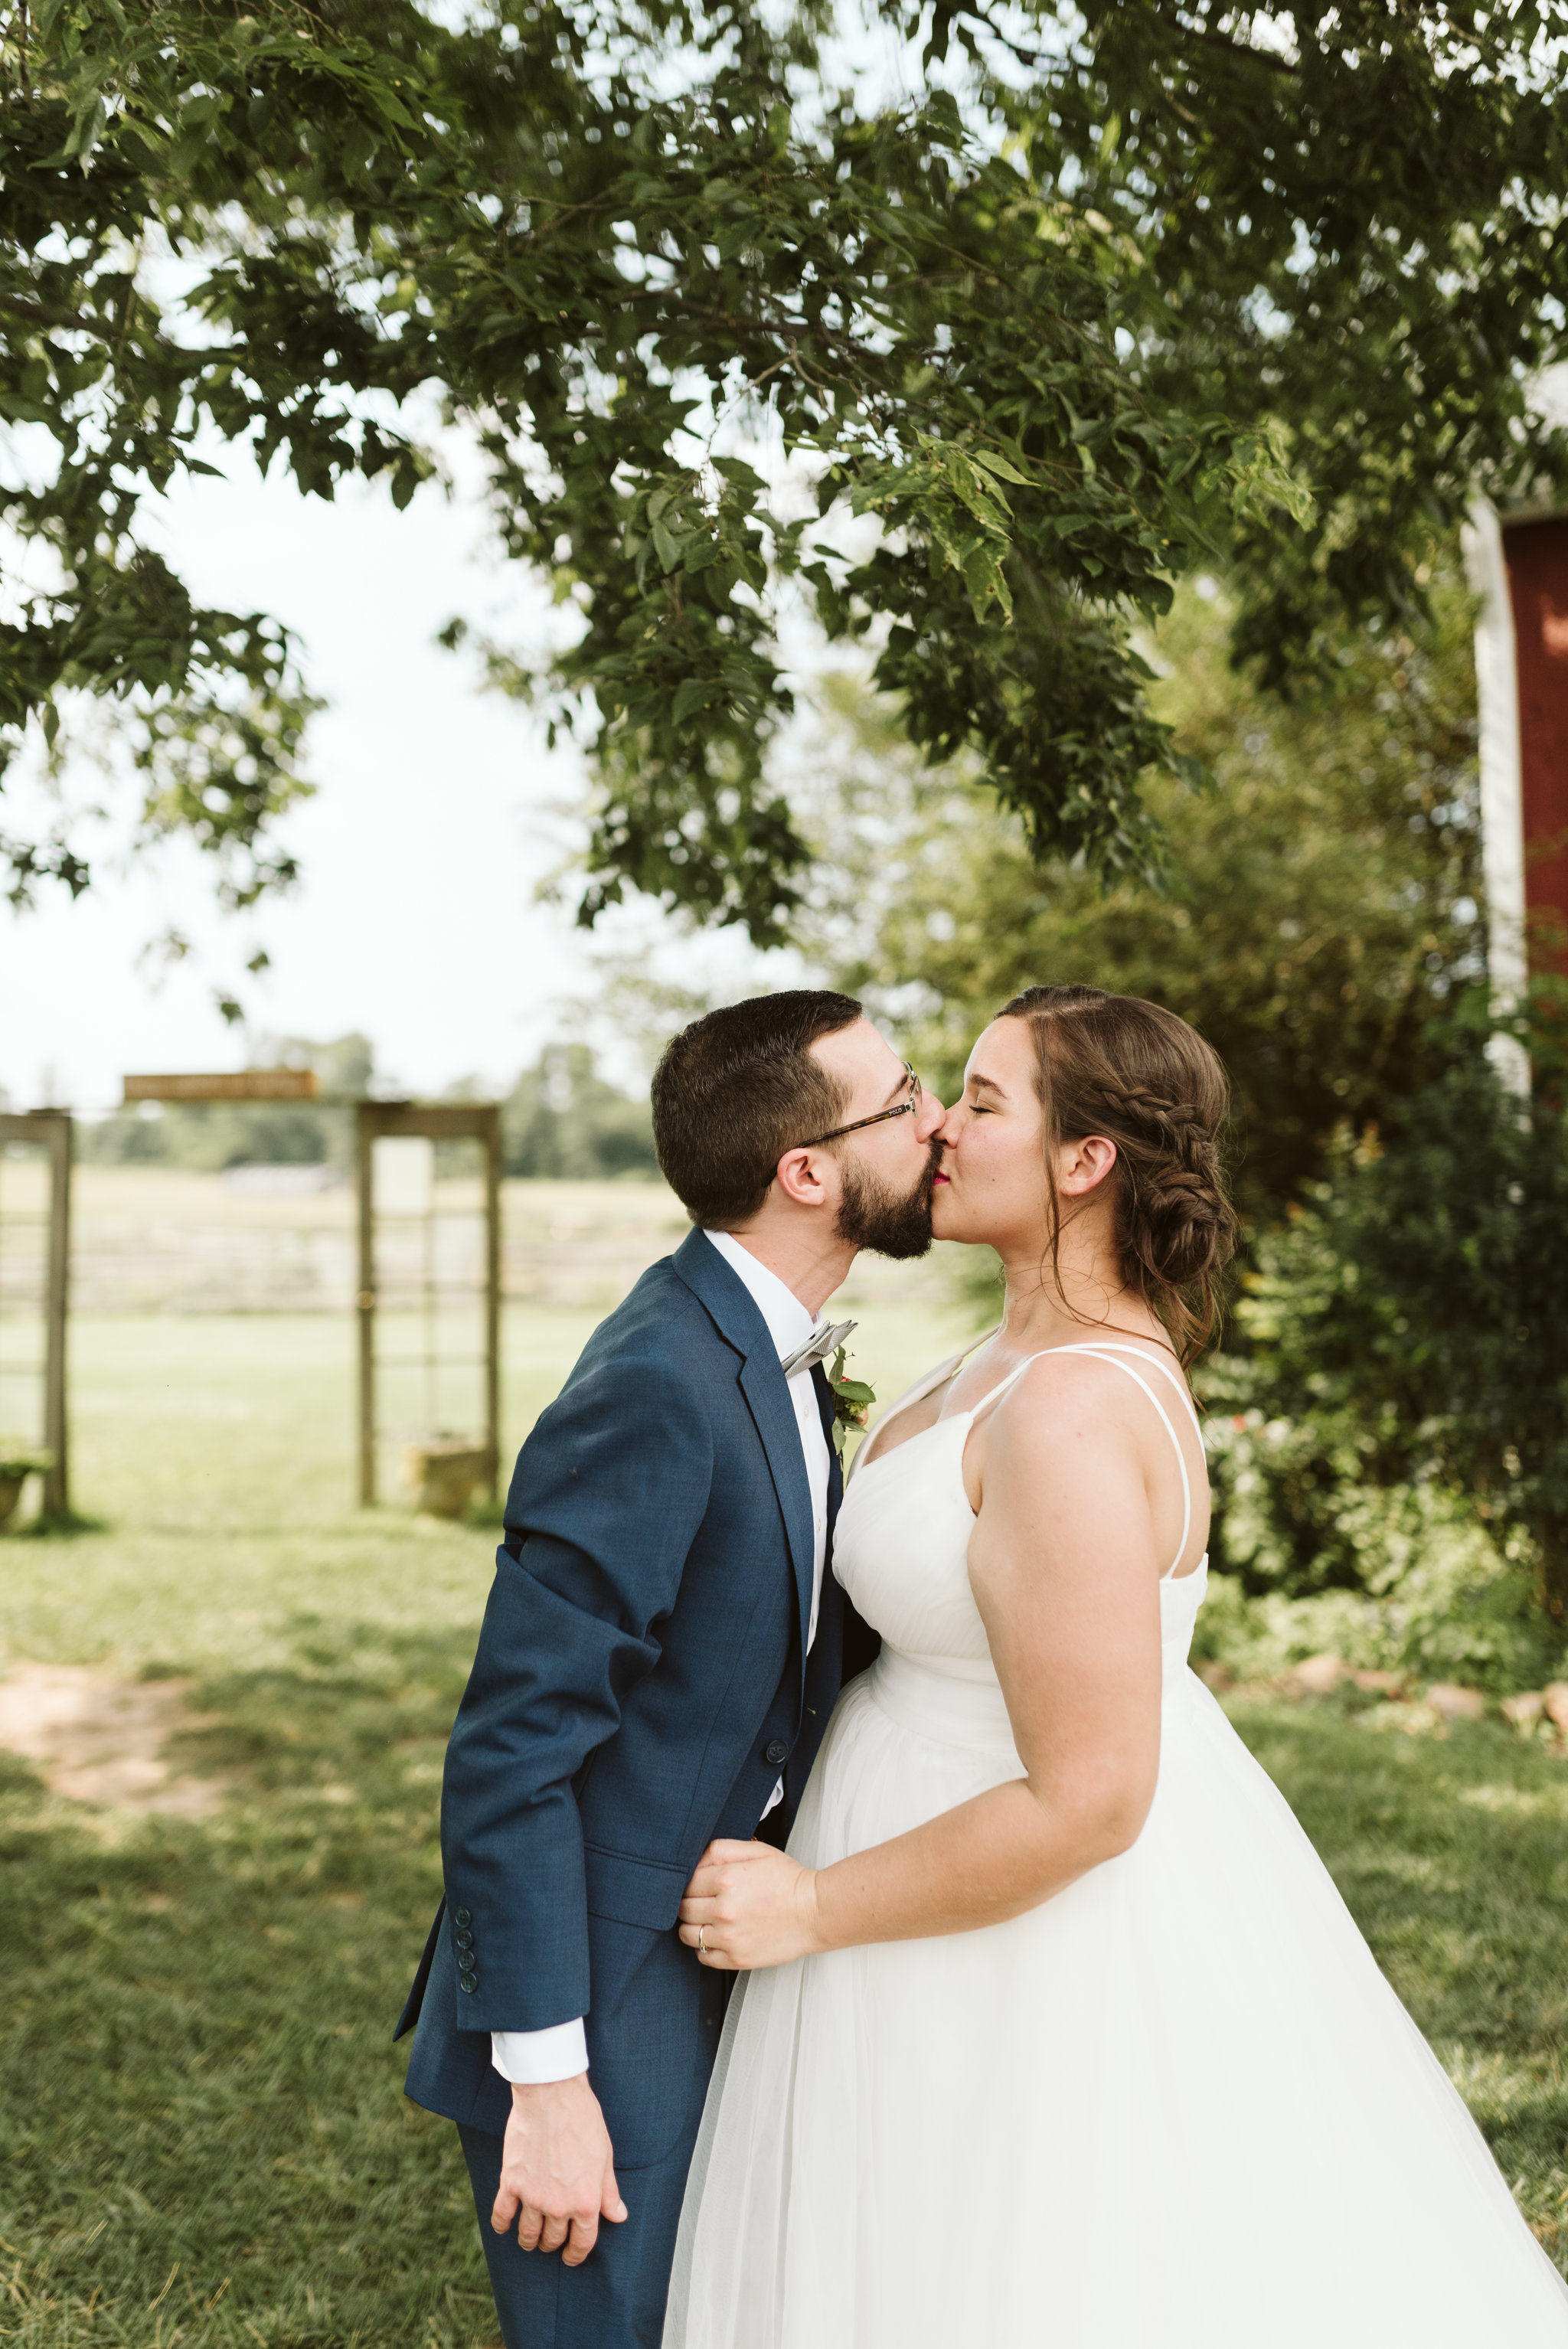 Rocklands Farm, Maryland, Intimate Wedding, Baltimore Wedding Photographer, Sungold Flower Co, Rustic, Romantic, Barn Wedding, Sweet Photo of Bride and Groom Kissing Outside